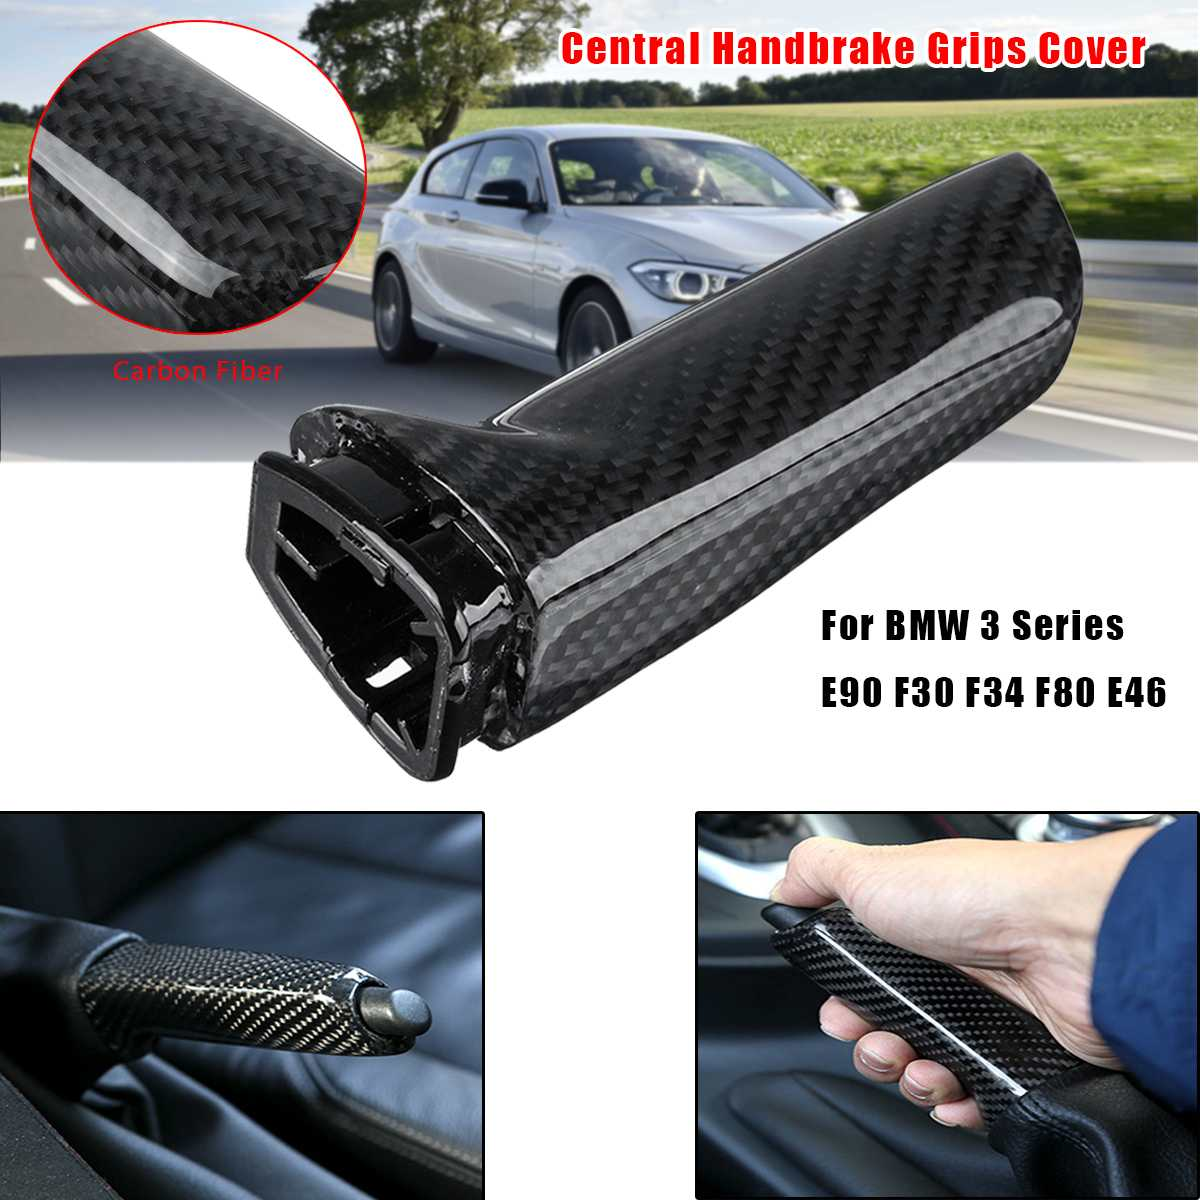 Car Carbon Fiber Hand Brake Cover Sticker Universal For BMW X1 1 2 3 4 Series GT M4 G30 F30 F20 F10 E36 E39 E46 E60 E90 X5 E50